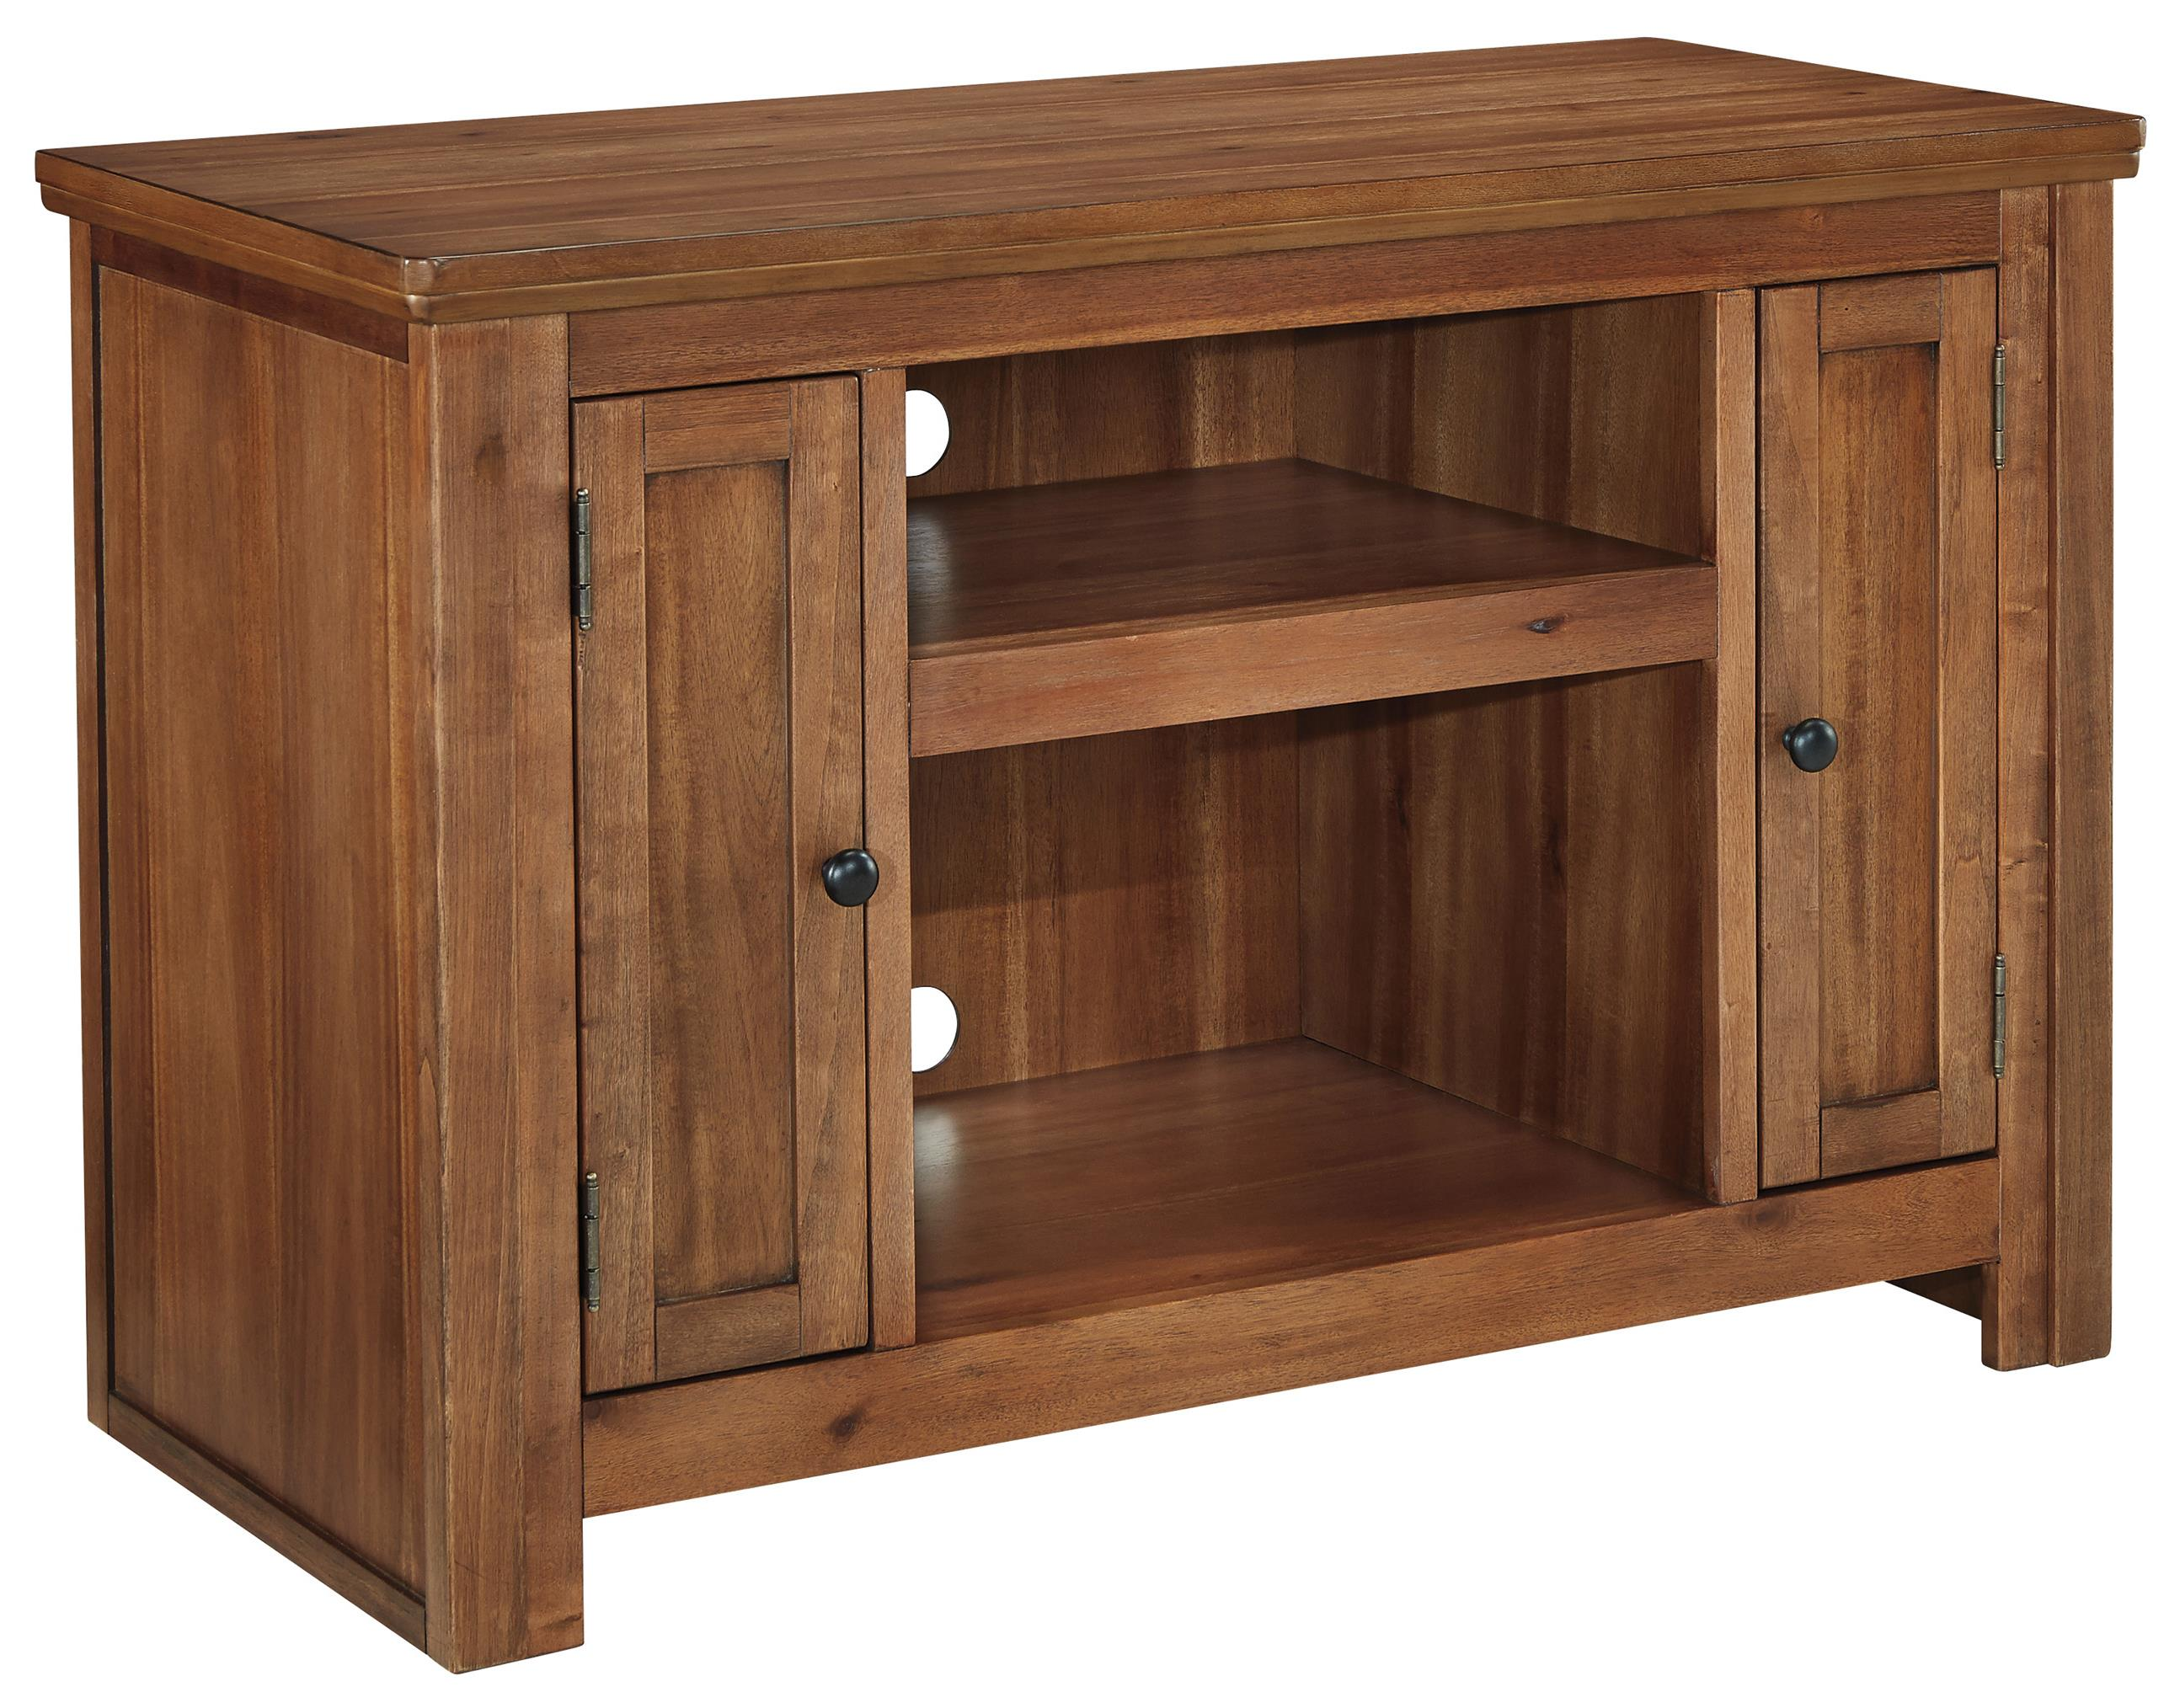 Signature Design by Ashley Macibery TV Stand - Item Number: W785-18